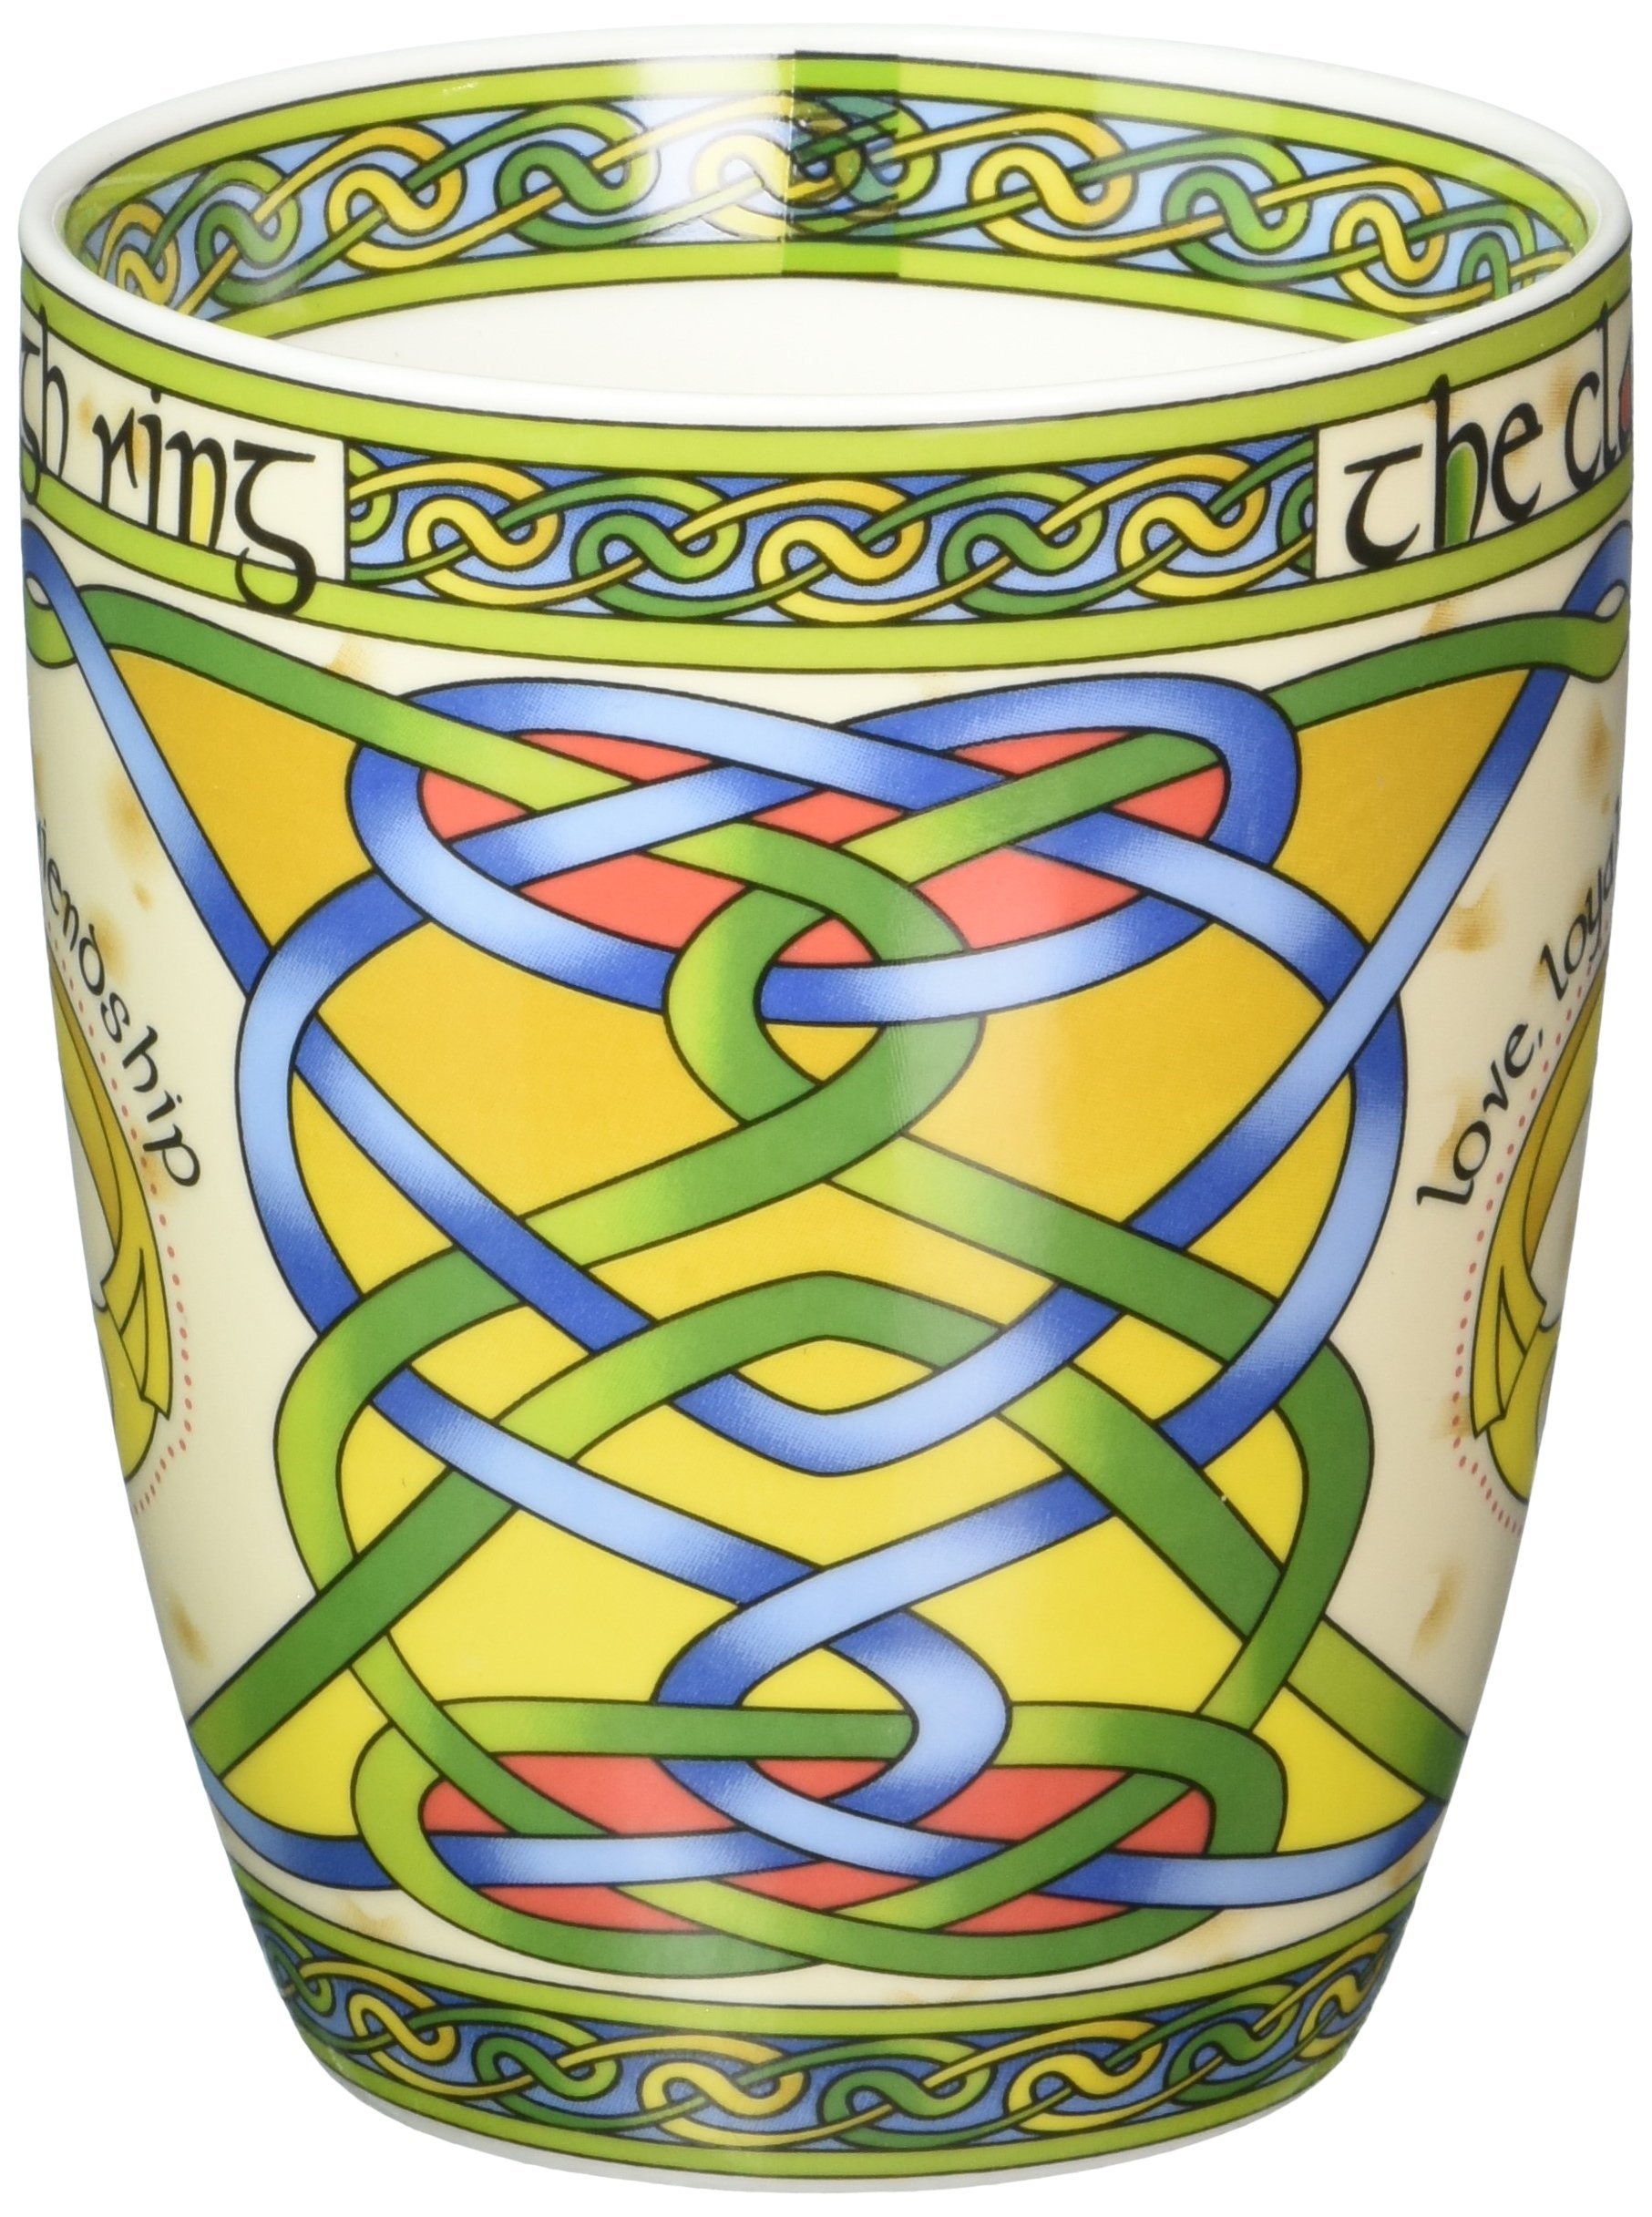 May the road rise to meet you Irish Blessing bone china mug An Irish Gift designed in Galway Ireland by Irish Weave by Royal Tara. May the wind be always at your back